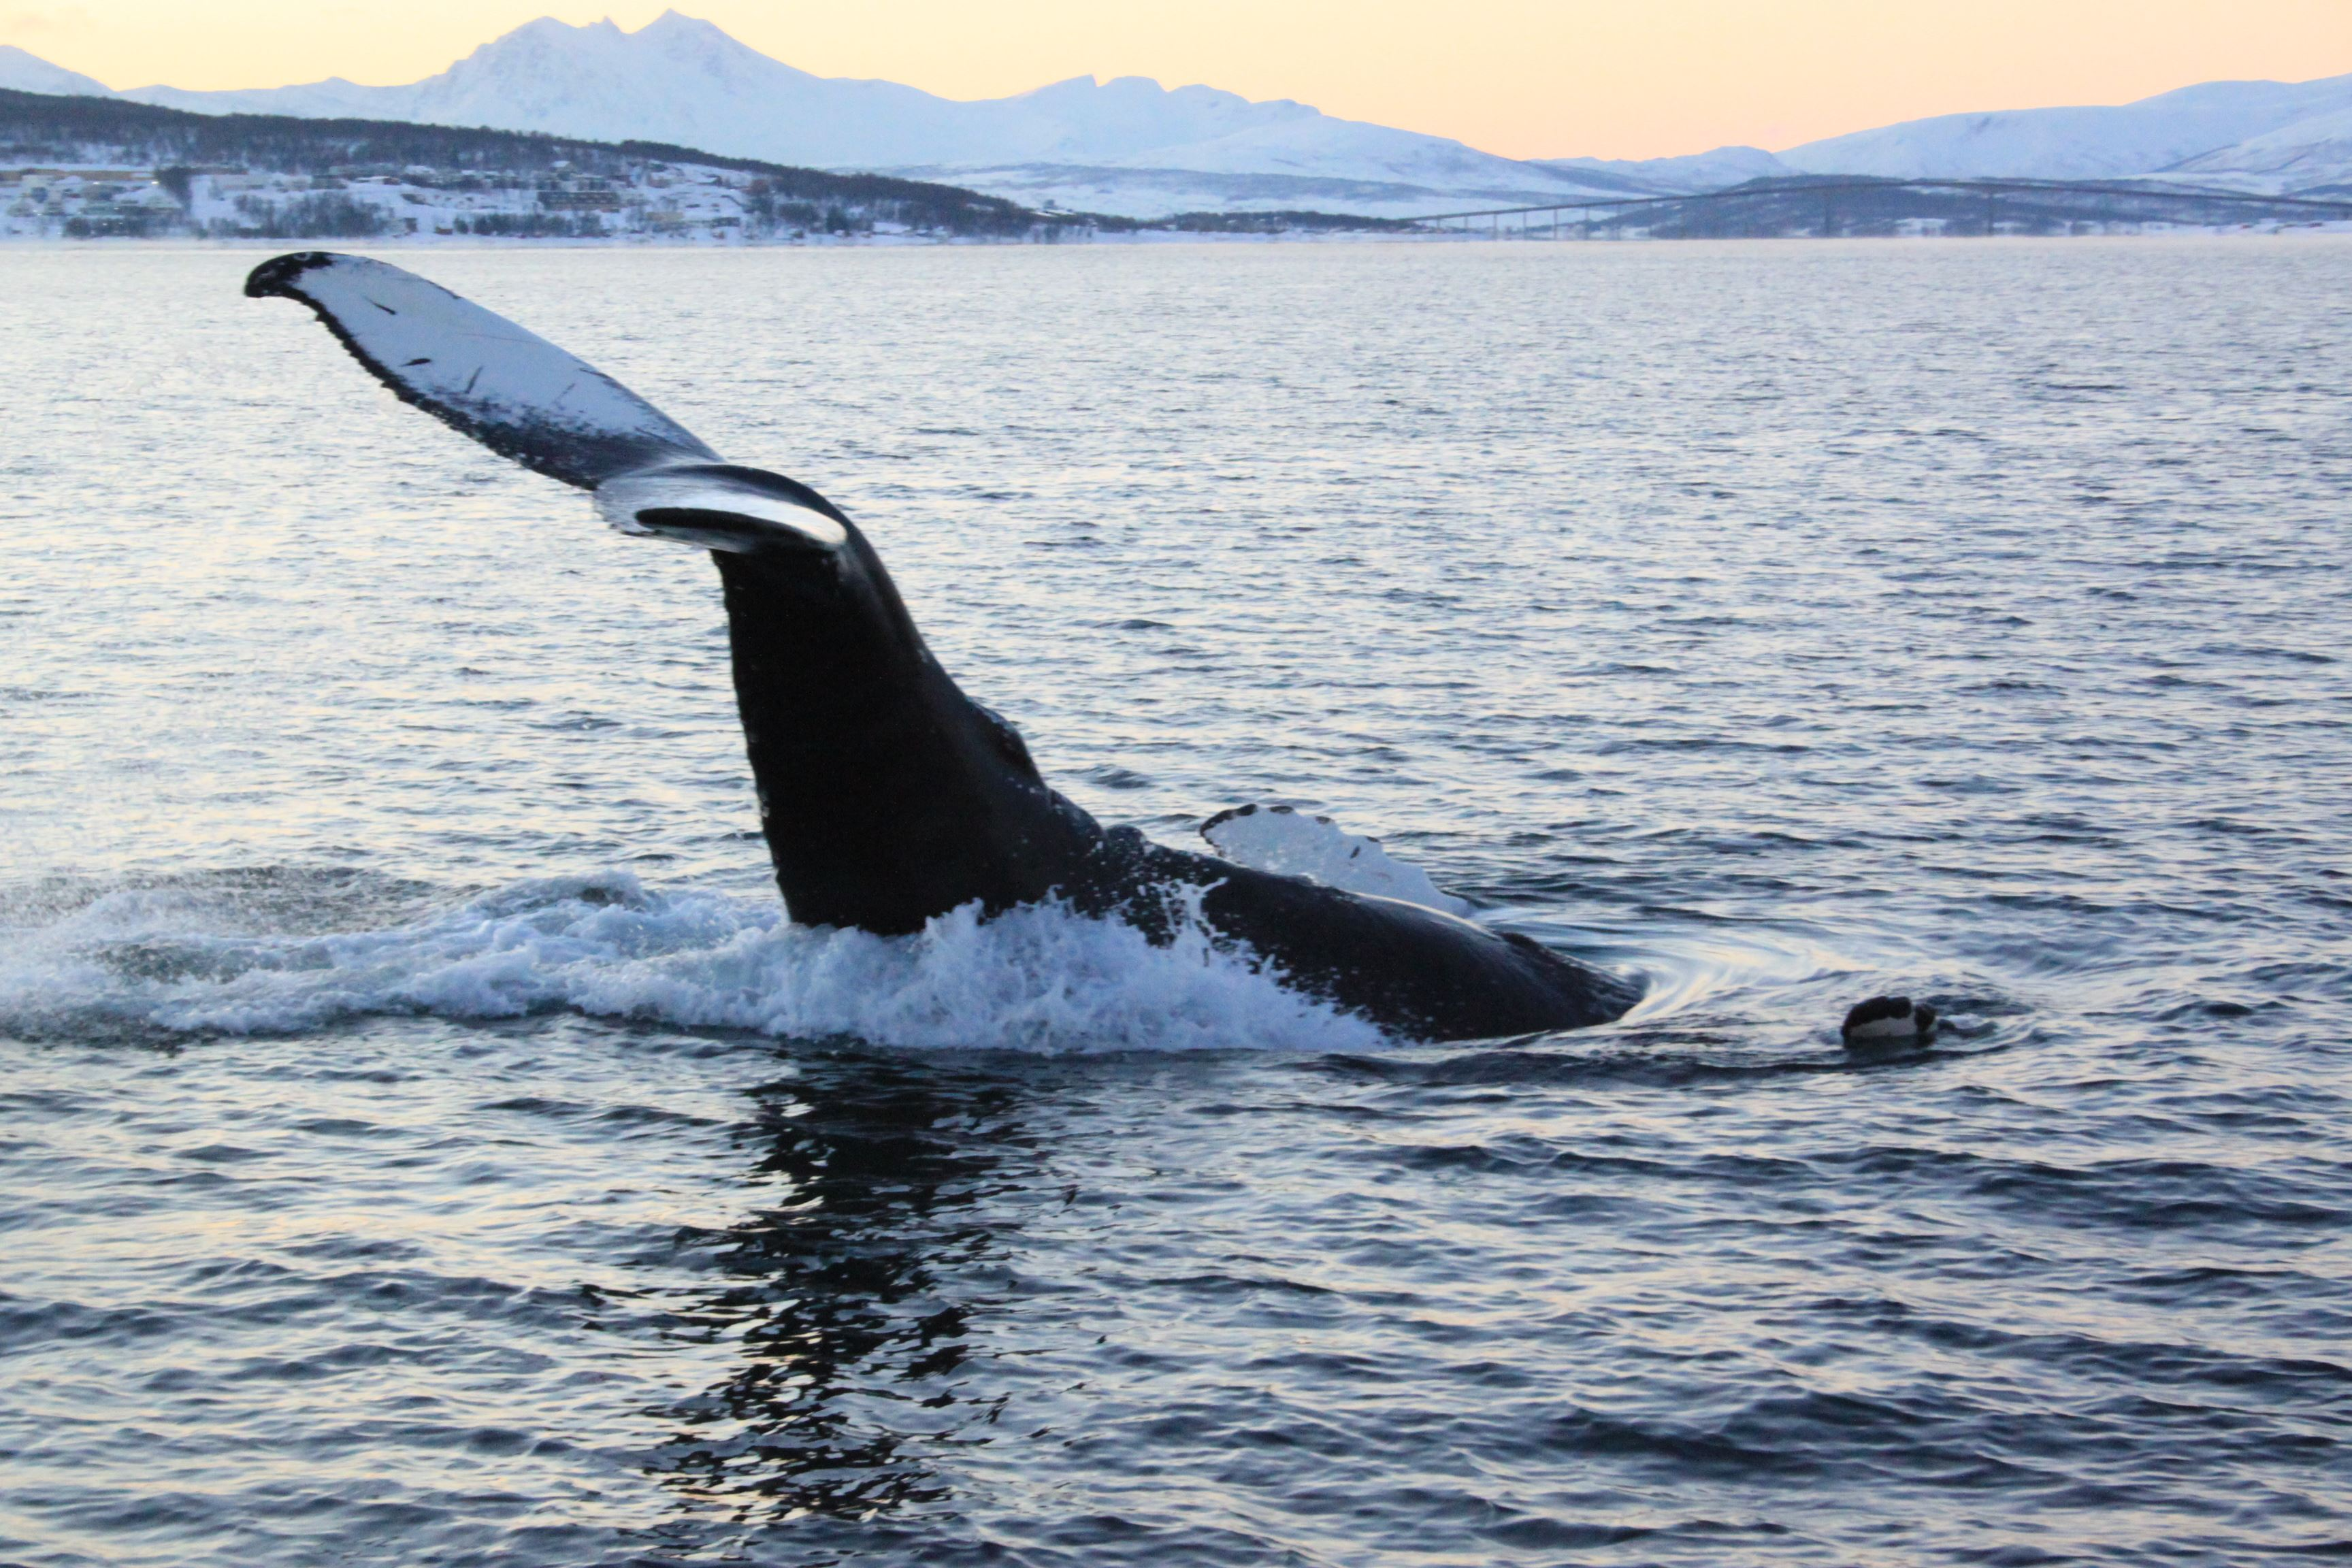 Polar whalesafari to Skjervøy - Polar Adventures